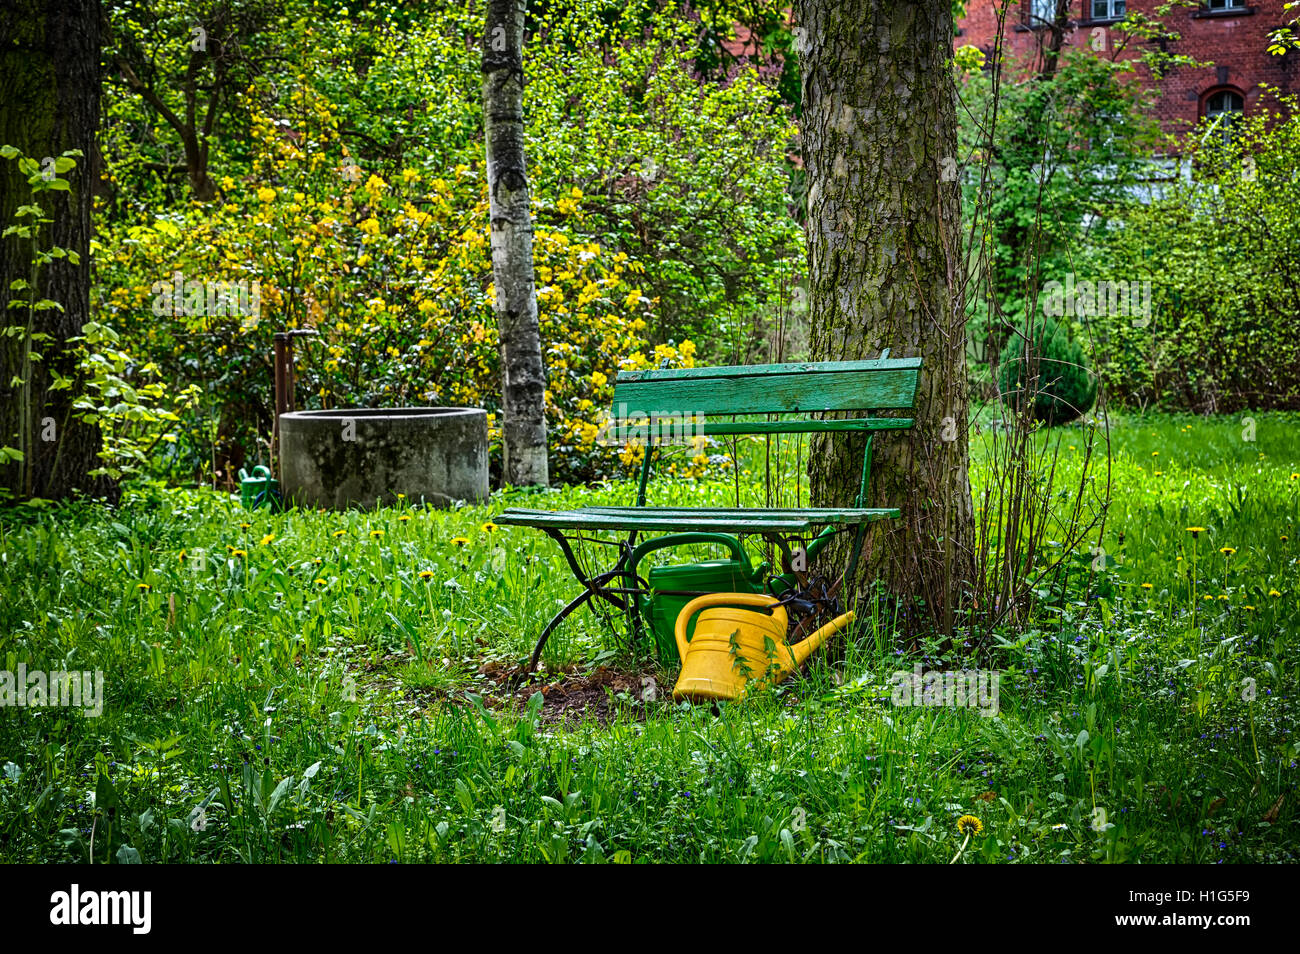 garden bench with yellow ewer - Stock Photo